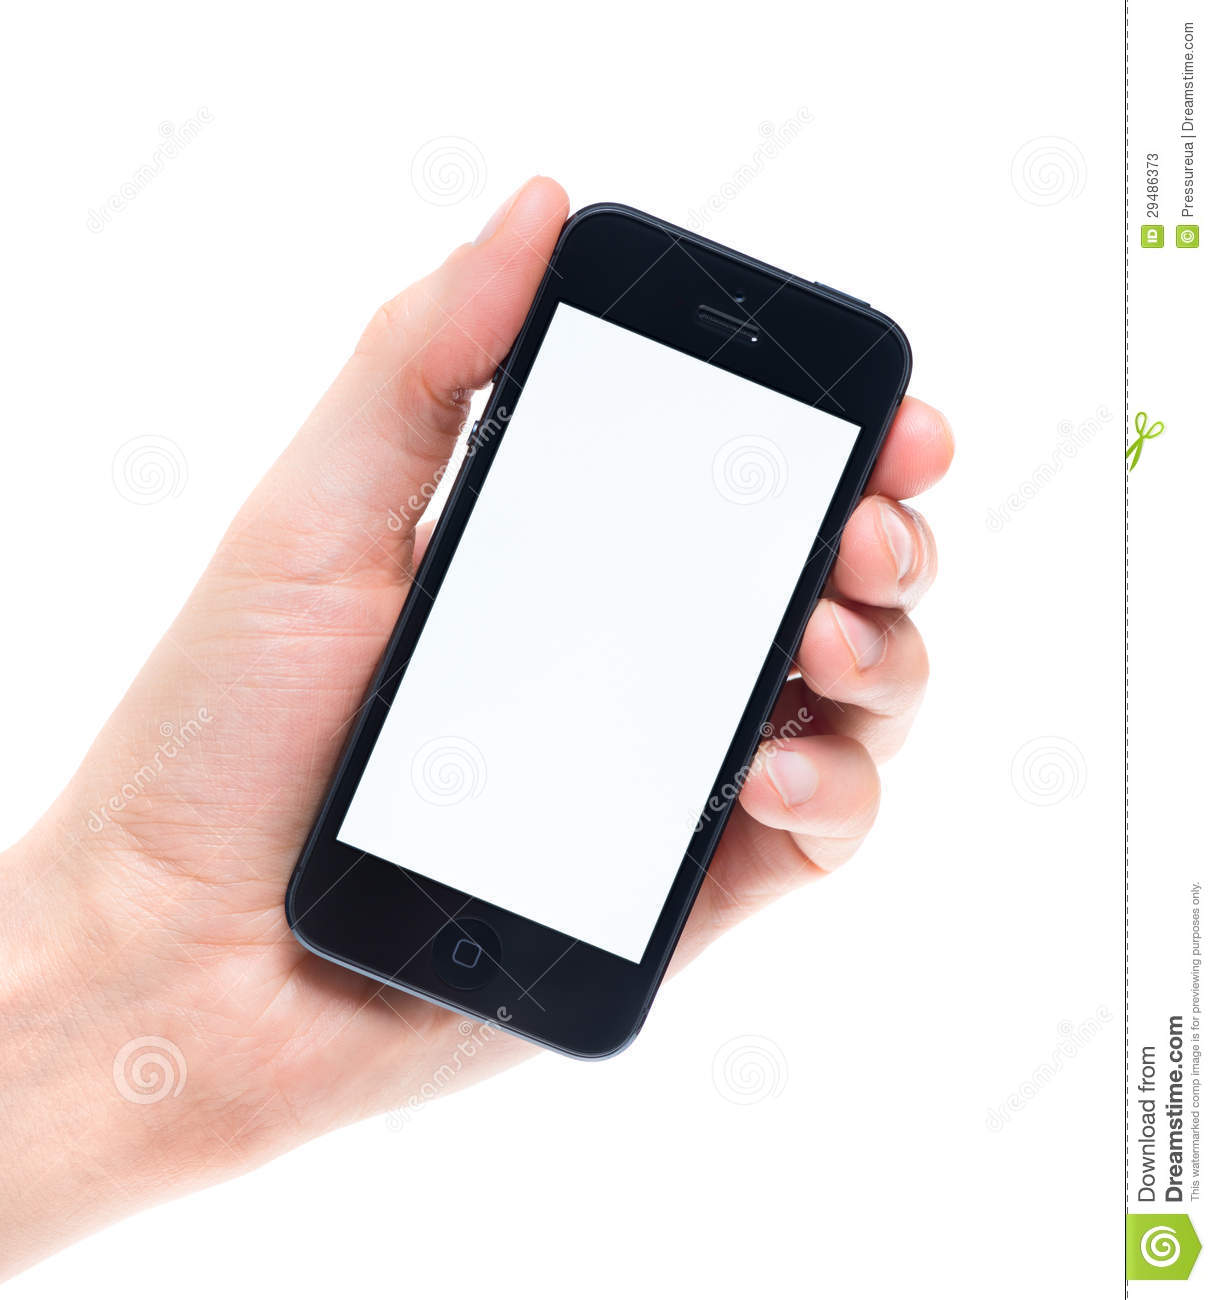 blank apple iphone 5 in hand editorial stock photo image of rh dreamstime com Cell Phone Clip Art Wholesale Blank Cell Phone Cases